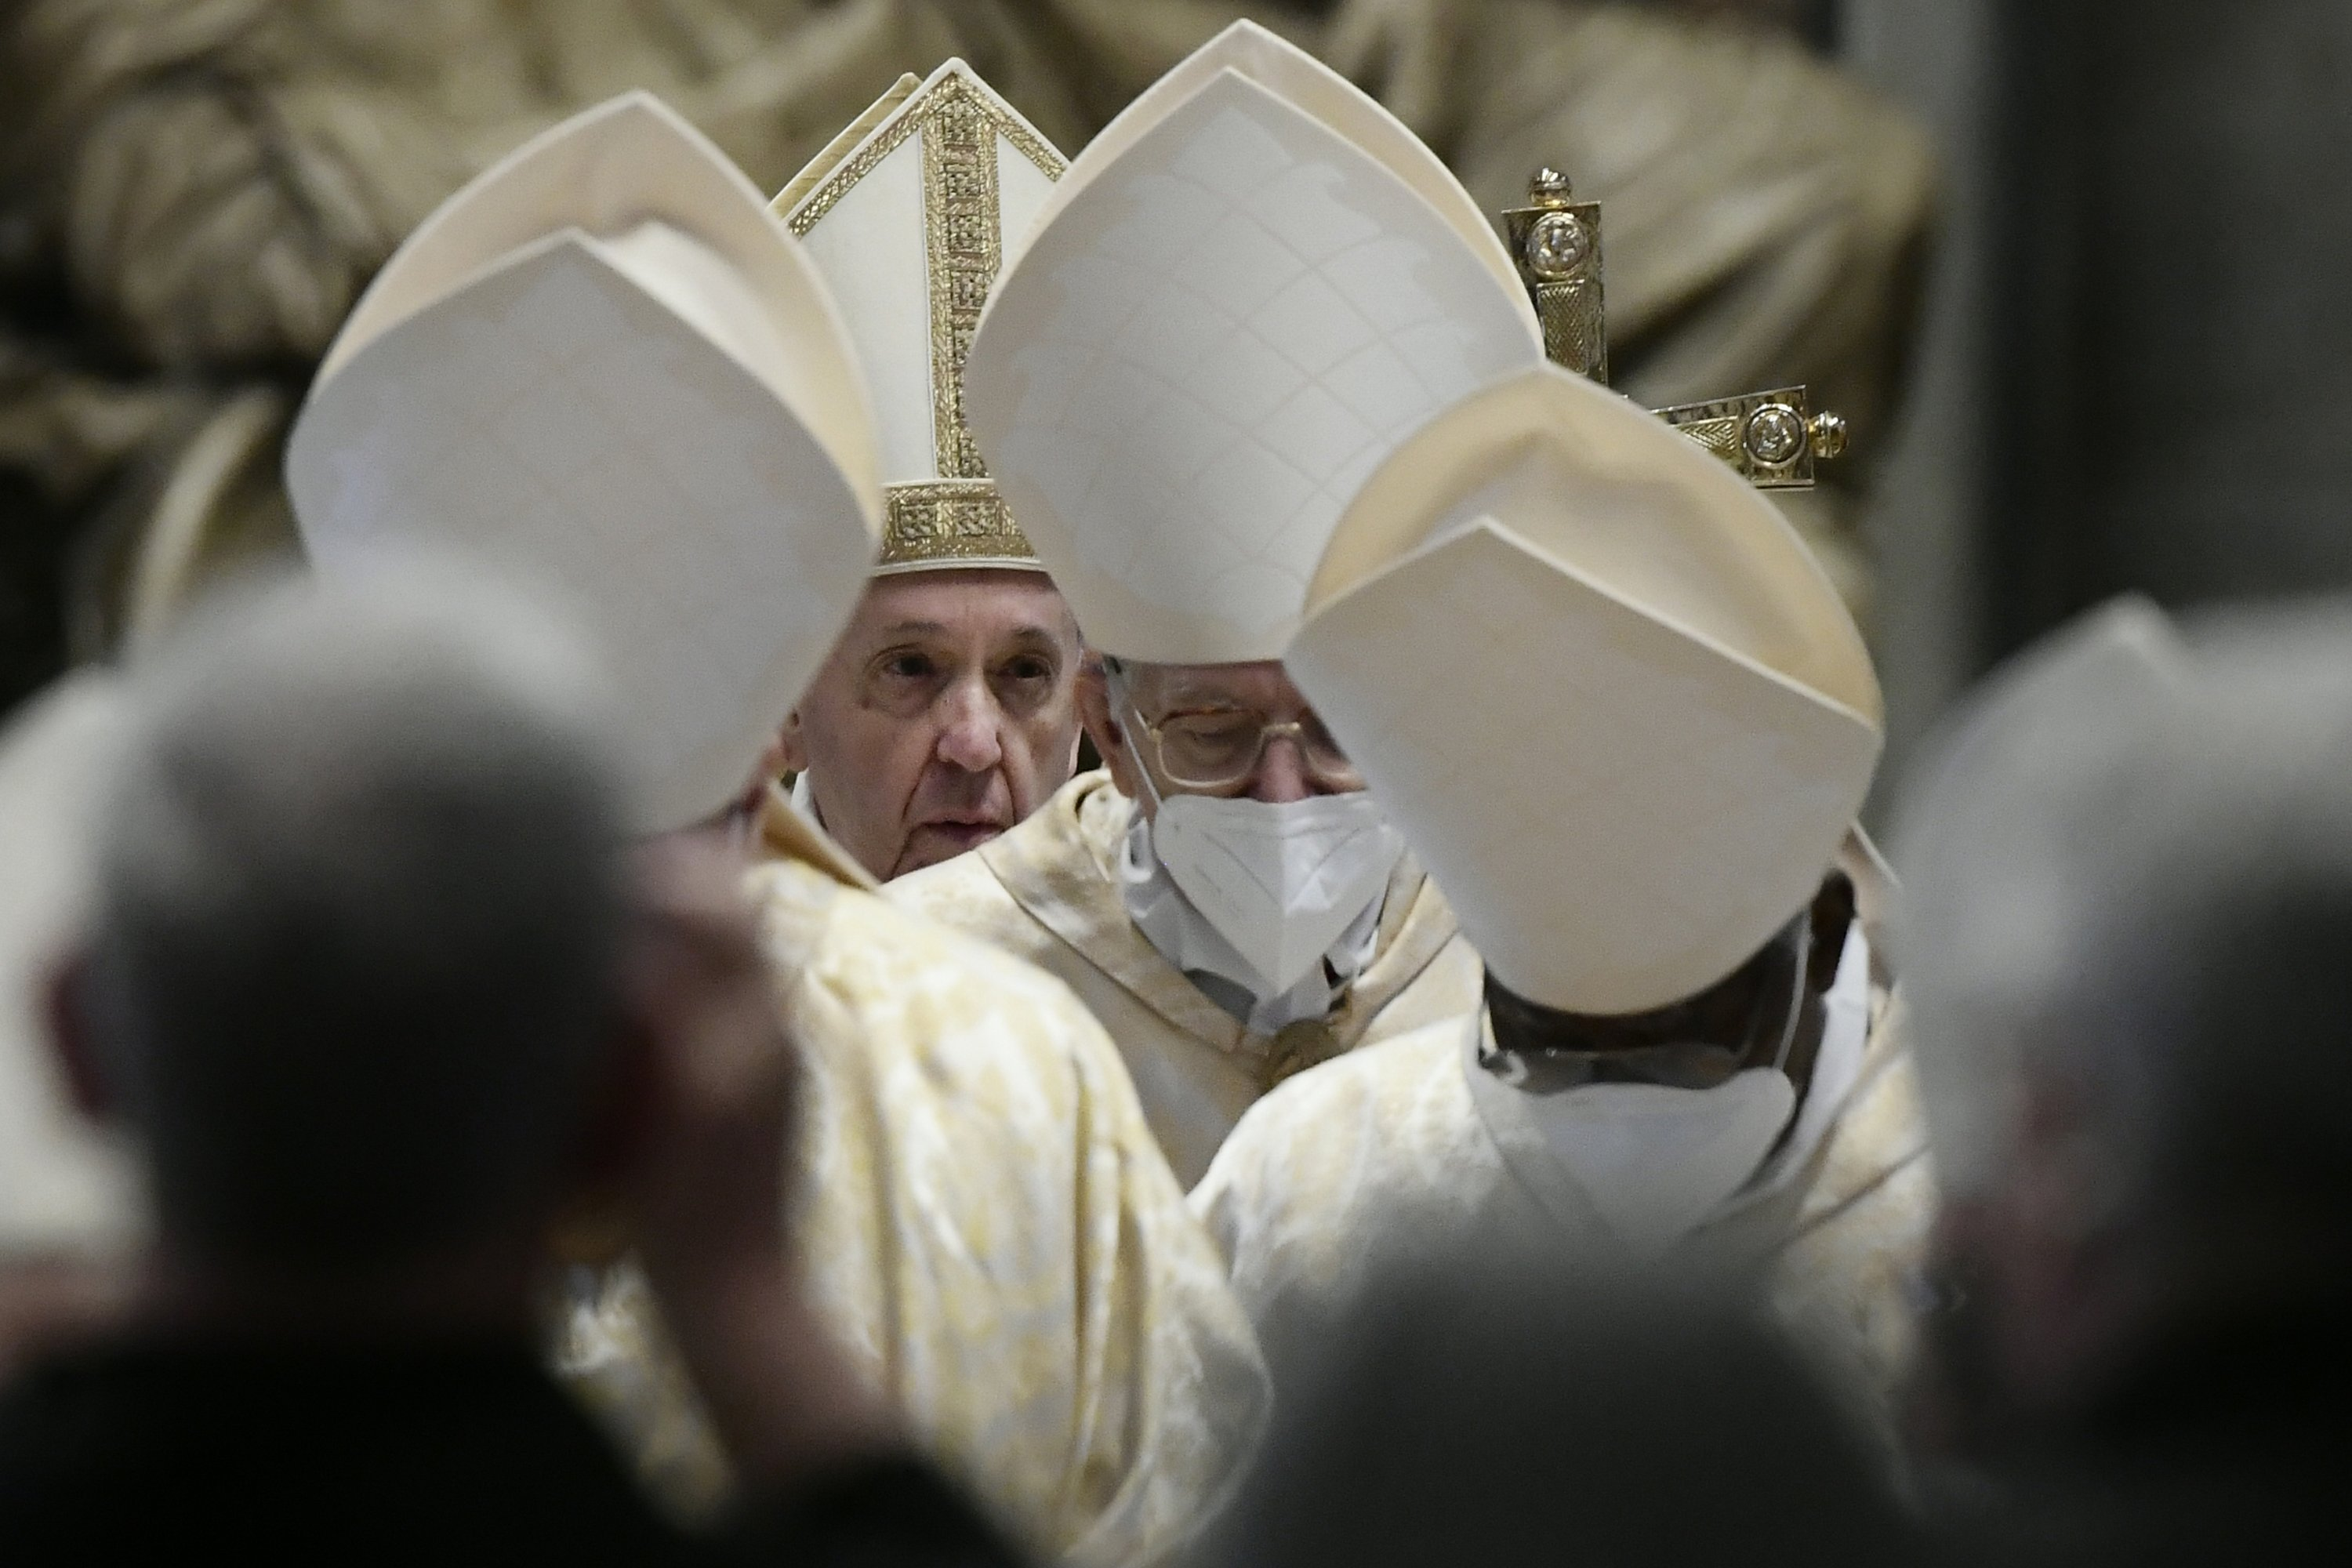 Christians mark another Easter pandemic